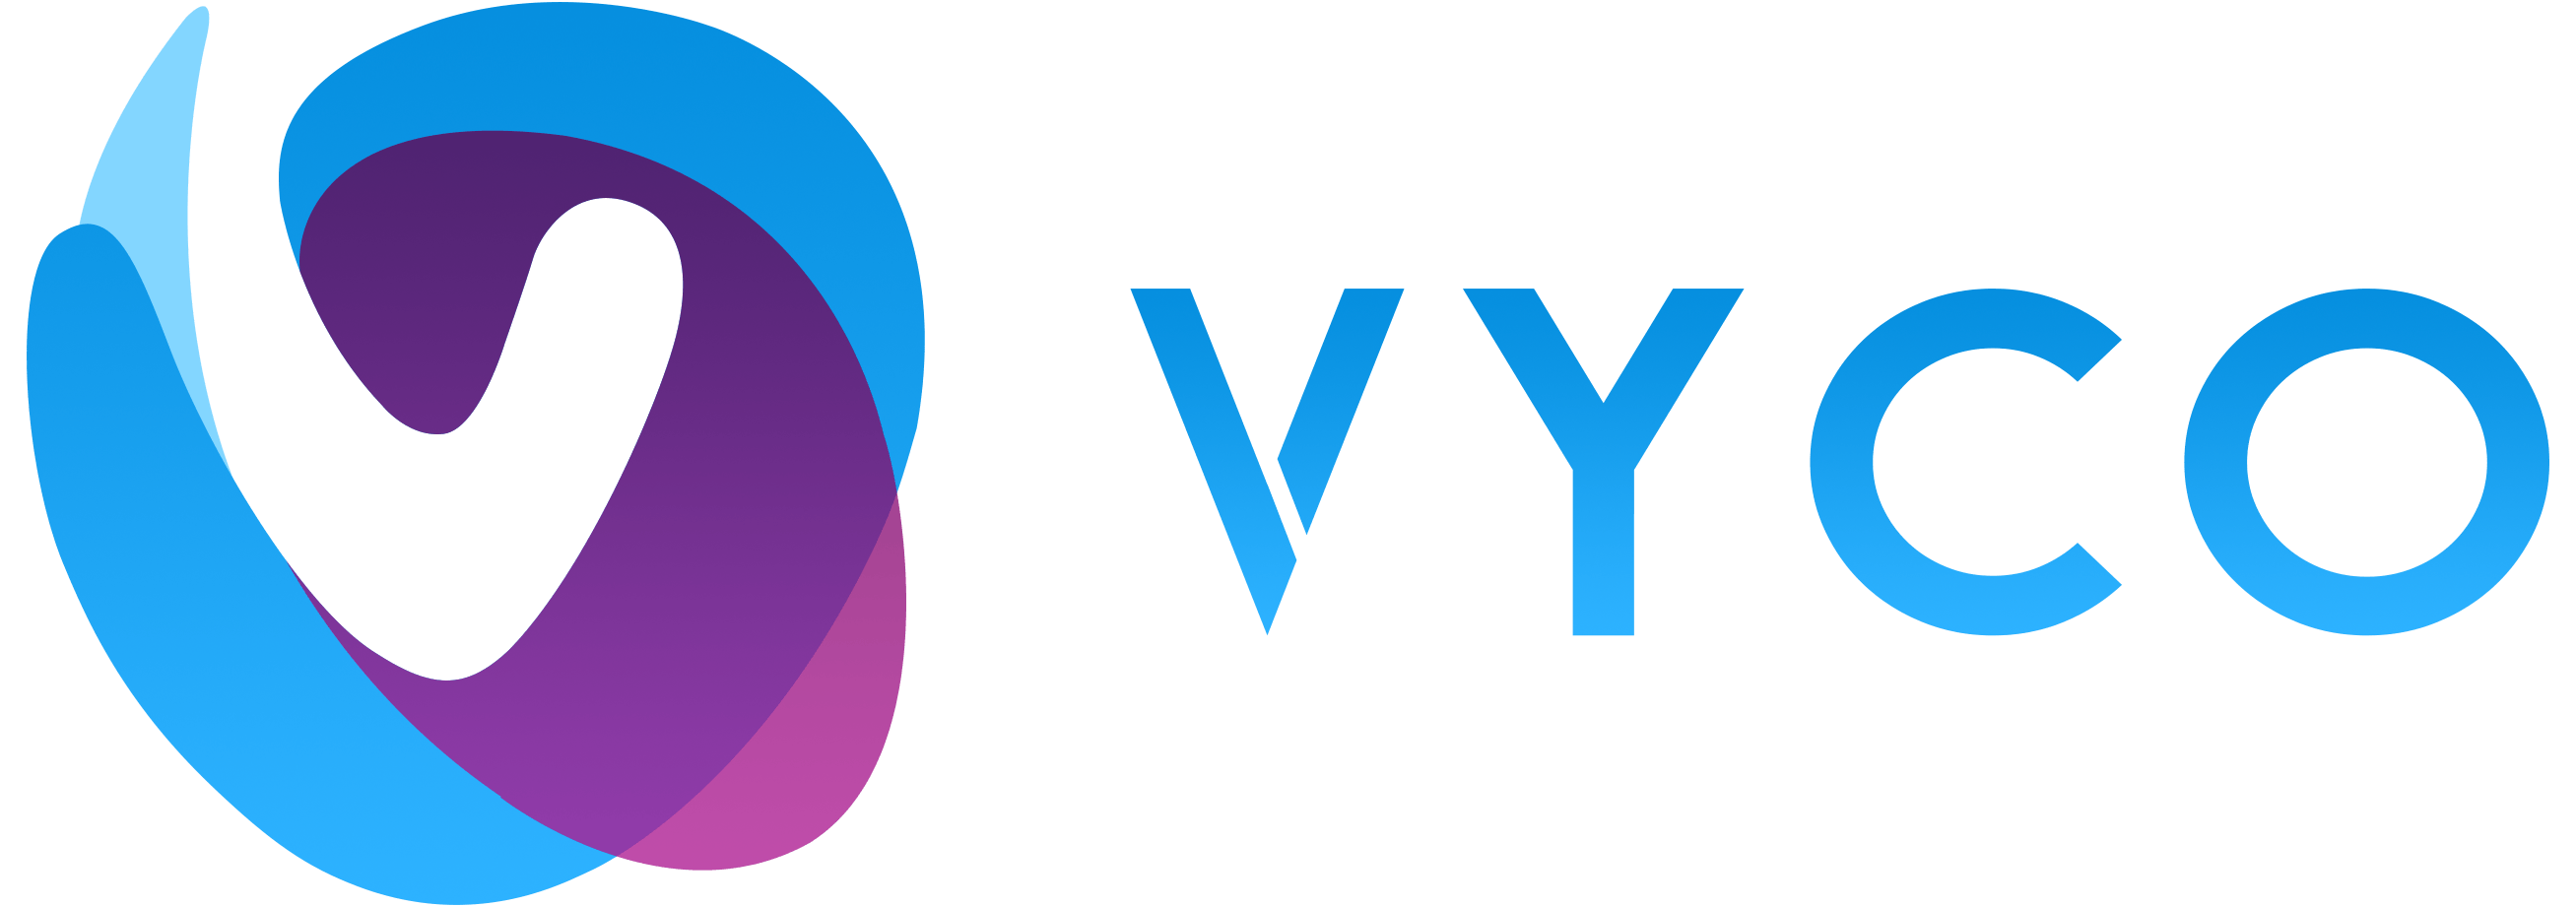 what is vyco